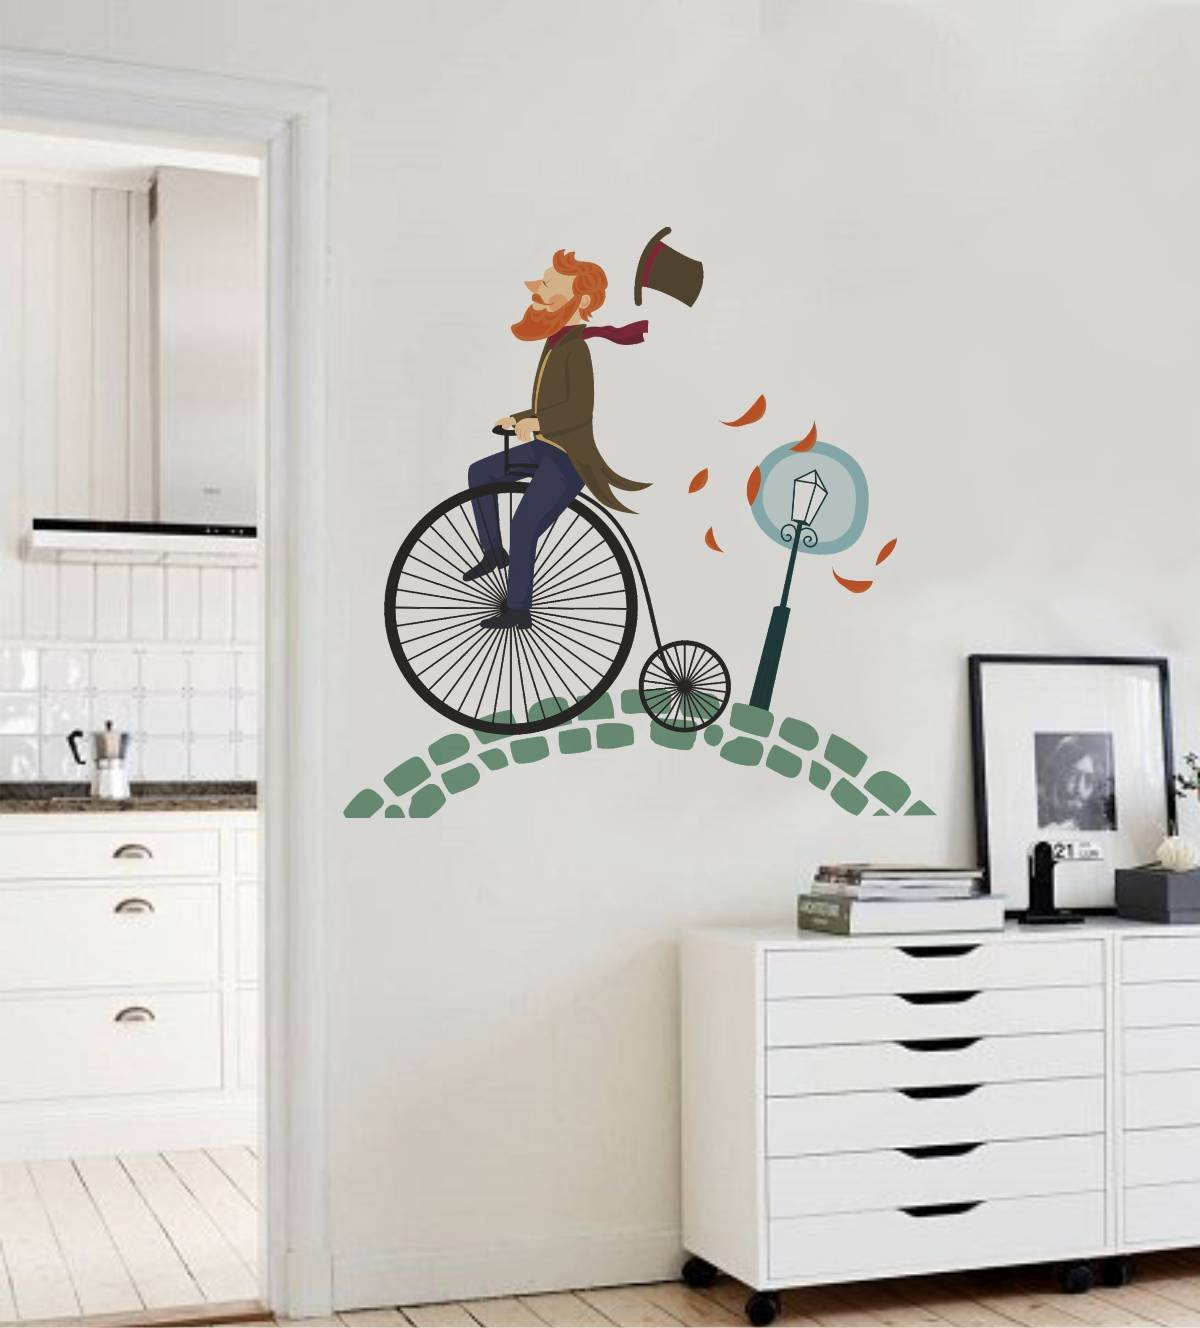 Buy rawpockets beard man on big cycle wall sticker pvc vinyl 100 cm x 100cm online at low prices in india amazon in